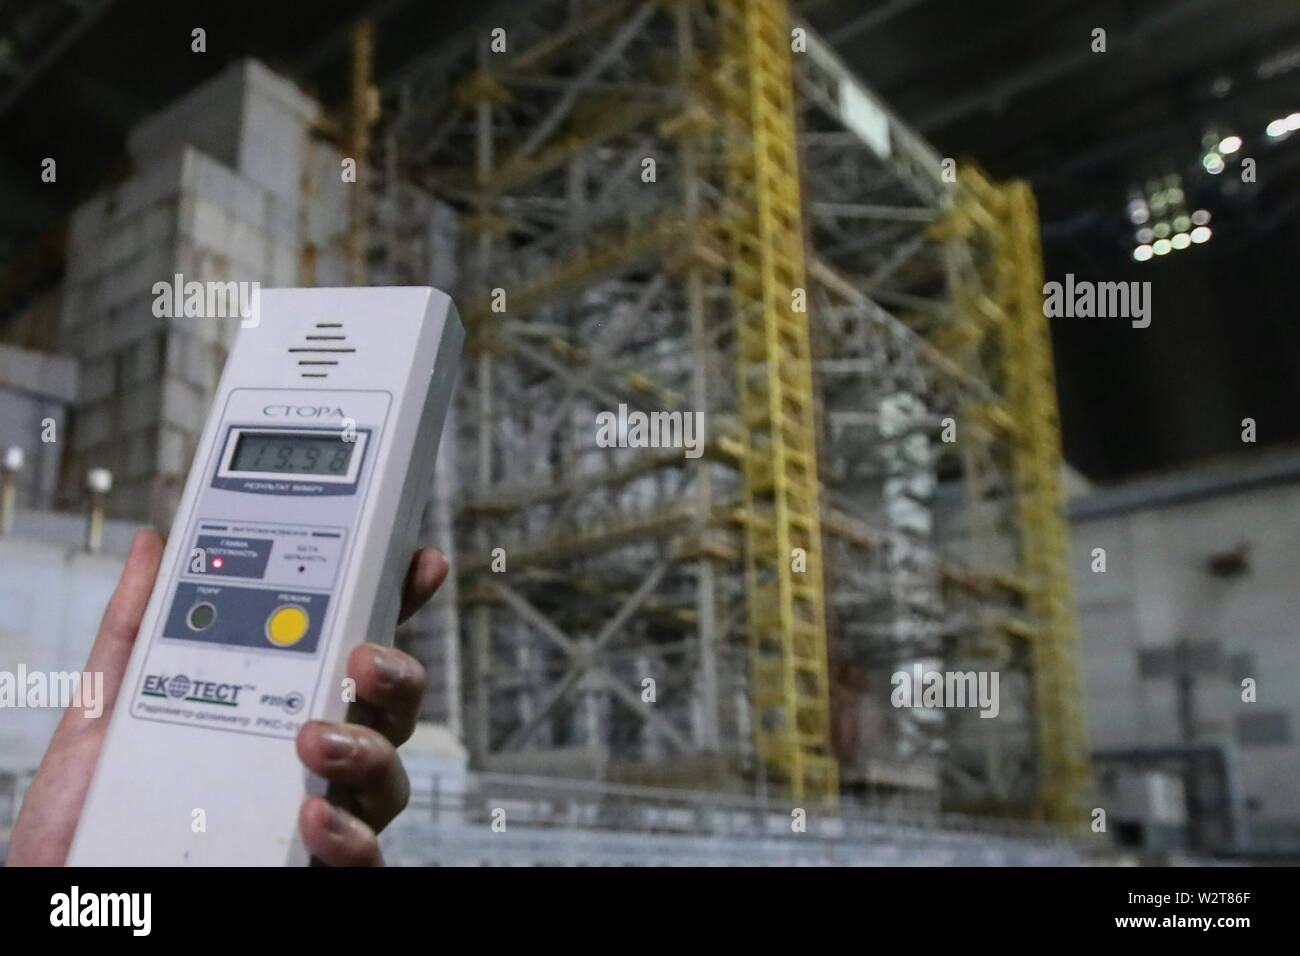 Pripyat, Ukraine. 10th July, 2019. PRIPYAT, UKRAINE - JULY 10, 2019: The image shows a person using a dosimeter next to the older shelter protecting Reactor 4 of the Chernobyl Nuclear Power Plant, under the new mobile metal structure, officially known as the New Safe Confinement, which has been officially handed over by the EU to the Ukrainian authorities; the construction of the 1.5bn euro metal shelter began in 2012; Reactor 4 is the site of the 1986 Chernobyl disaster; the older shelter is to be dismantled. Pyotr Sivkov/TASS Credit: ITAR-TASS News Agency/Alamy Live News - Stock Image